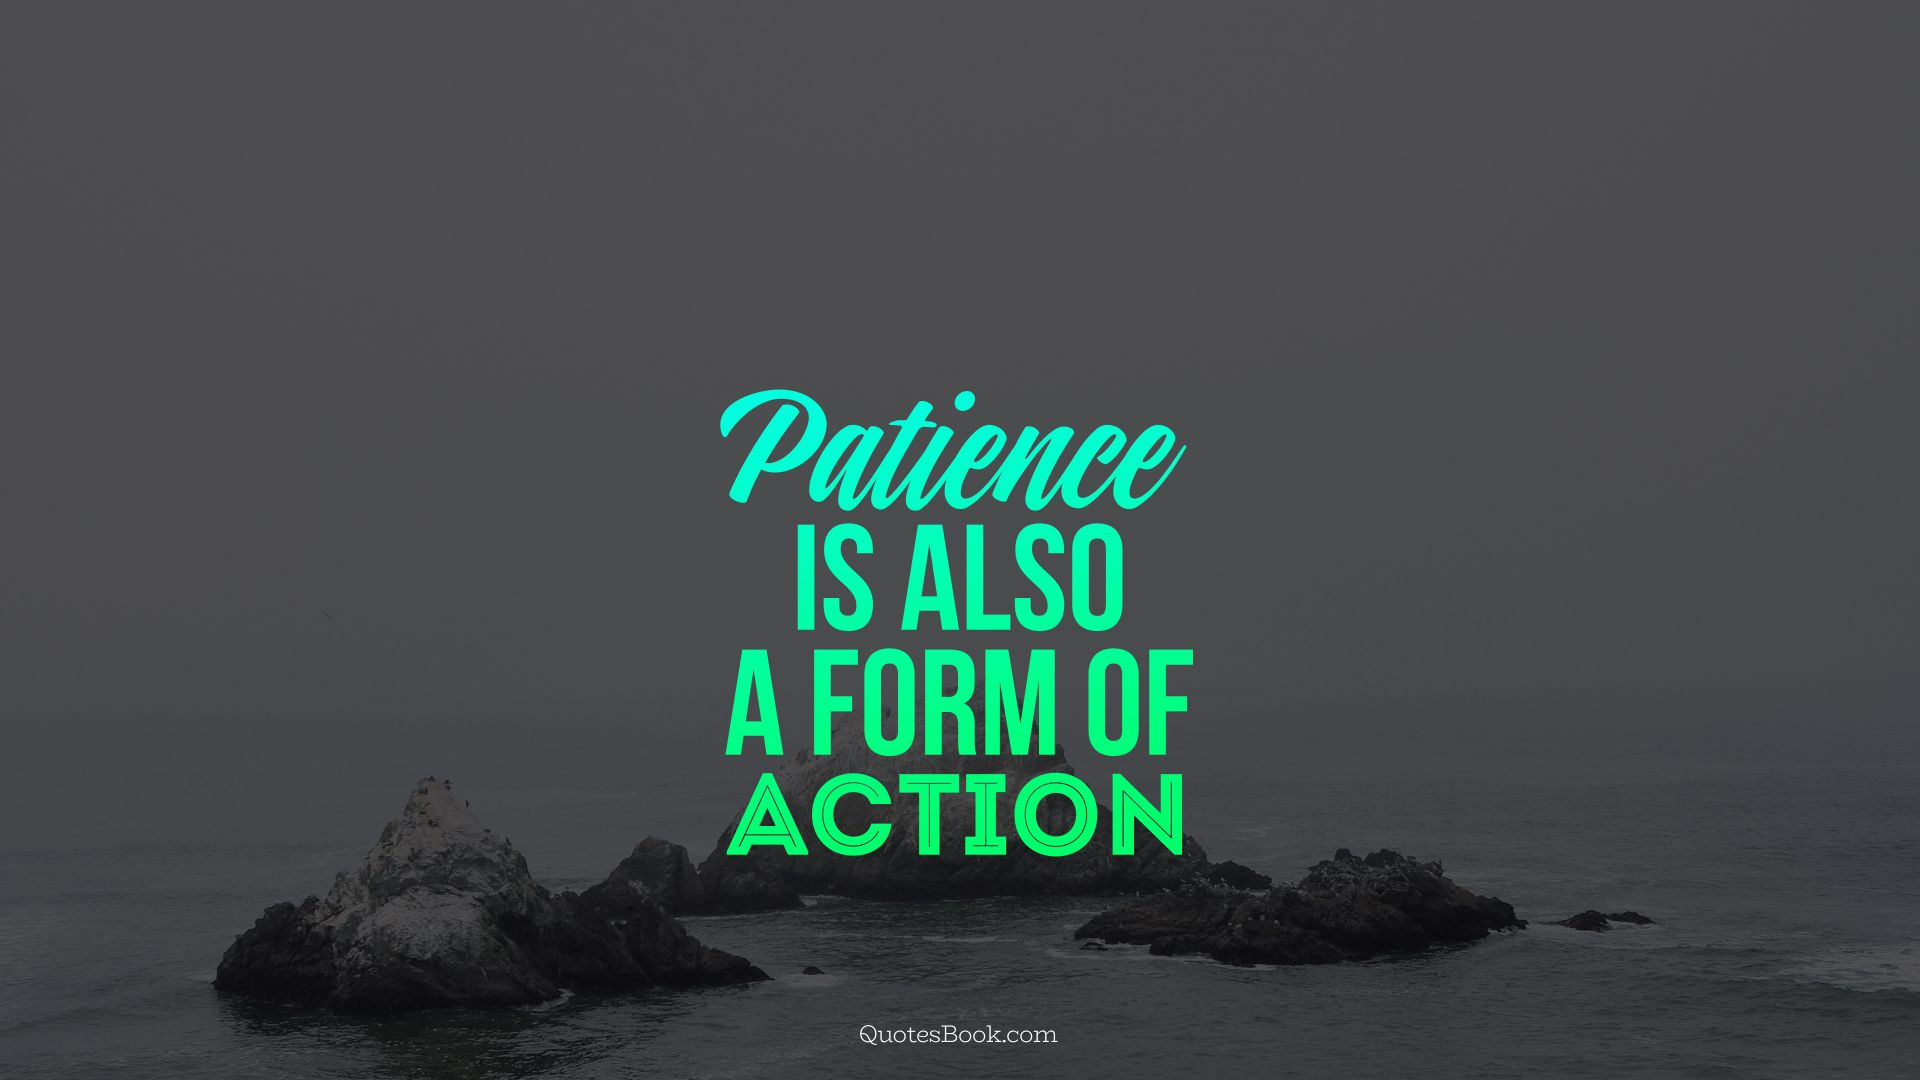 Patience is also a form of action